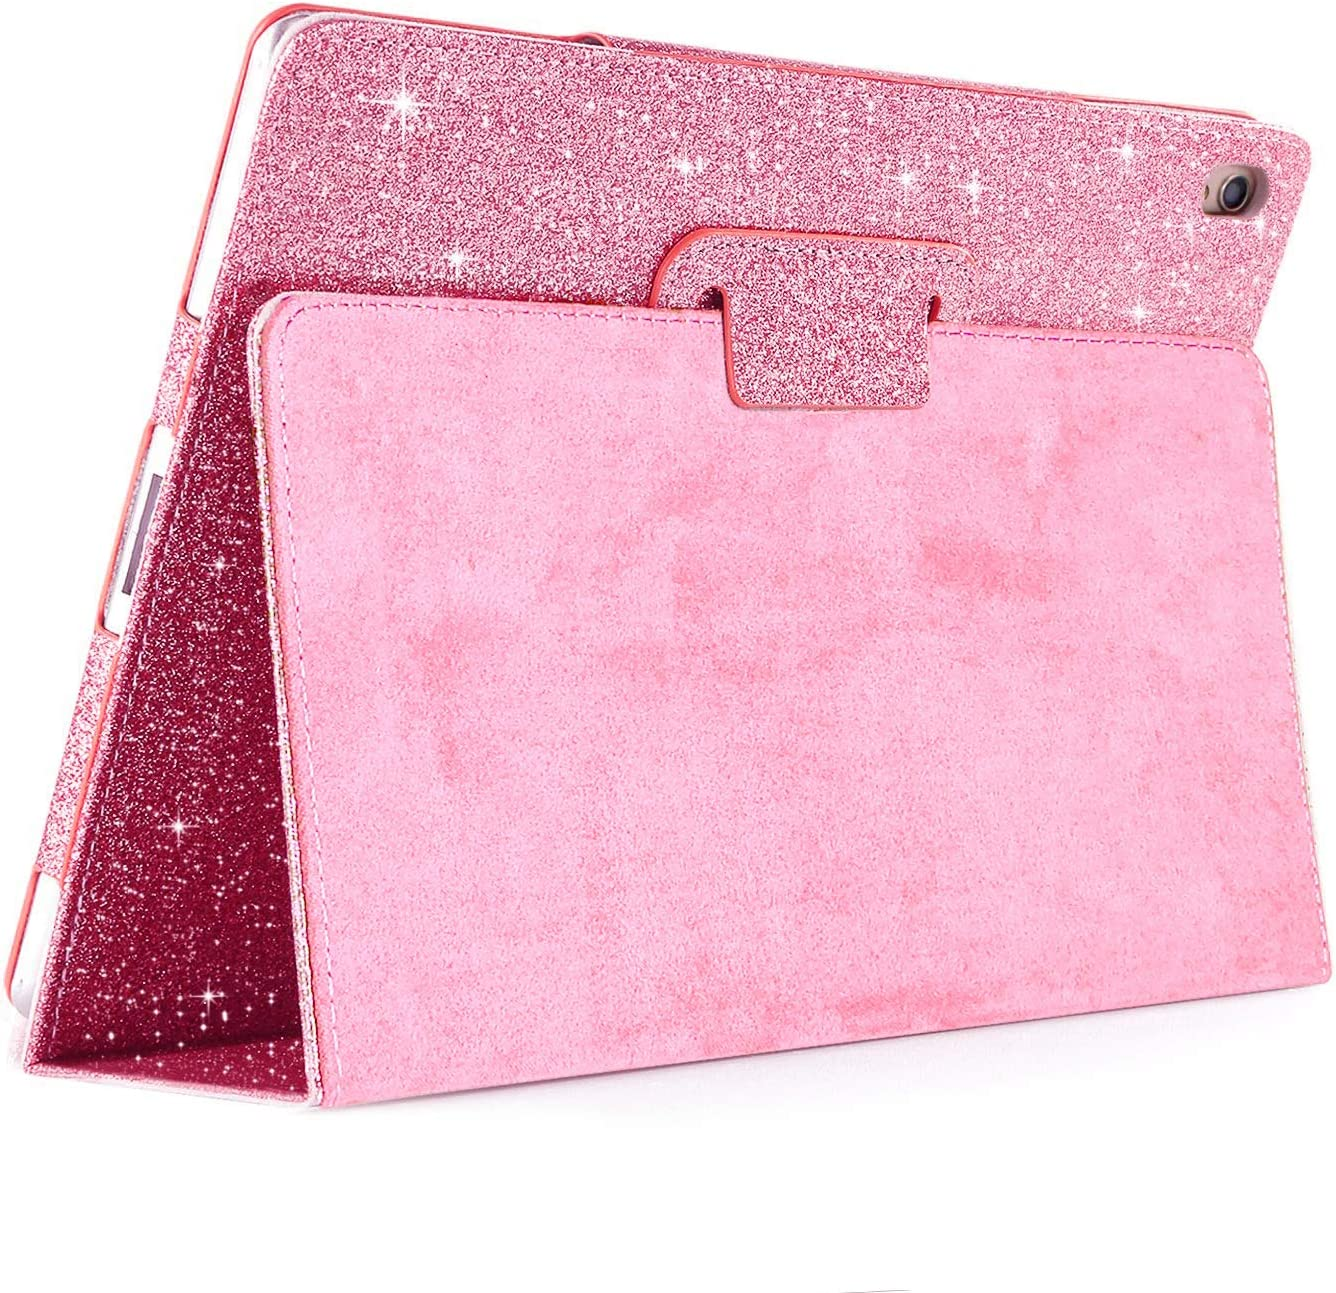 FANSONG iPad Air 3 2019 Case/iPad Pro 10.5-inch Case, Glitter Sparkle Leather Folio Stand Smart Cover [Auto Wake/Sleep] Case for iPad Air 3rd Generation 2019, Pink